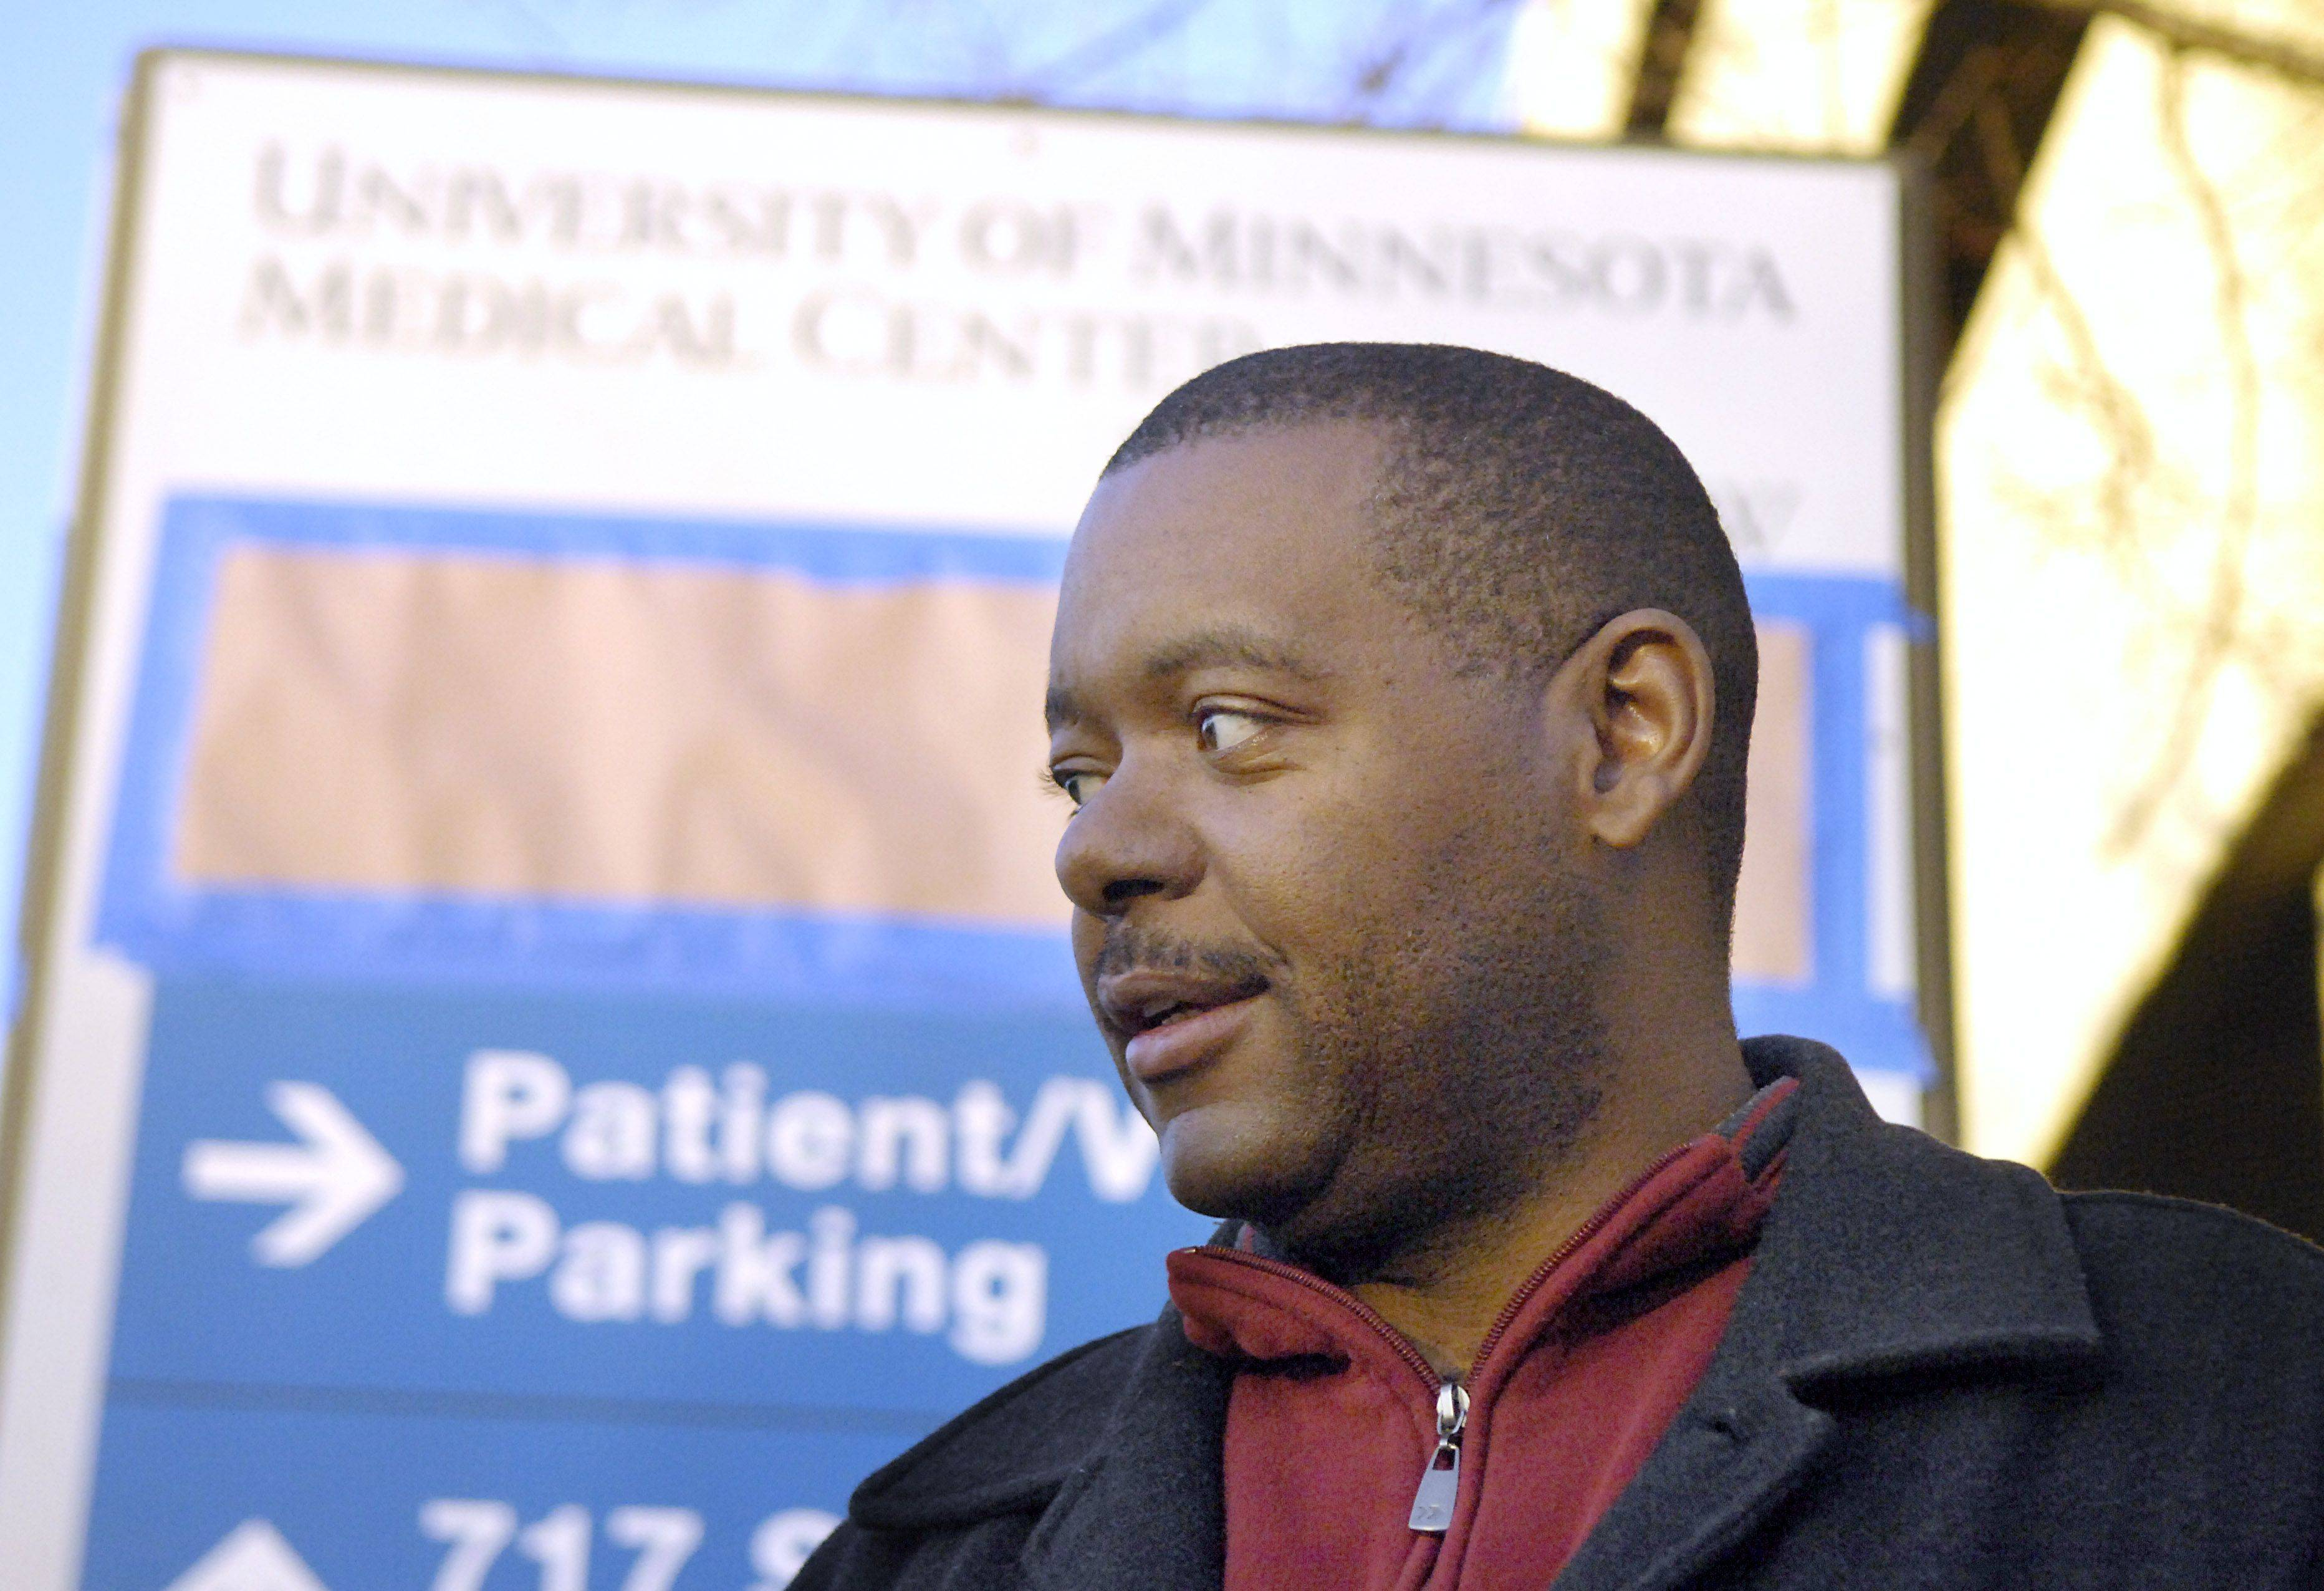 Eric Davis of Bartlett didn't realize there was a movie being filmed Friday when he went to the old Sherman Hospital to get some blood work done.